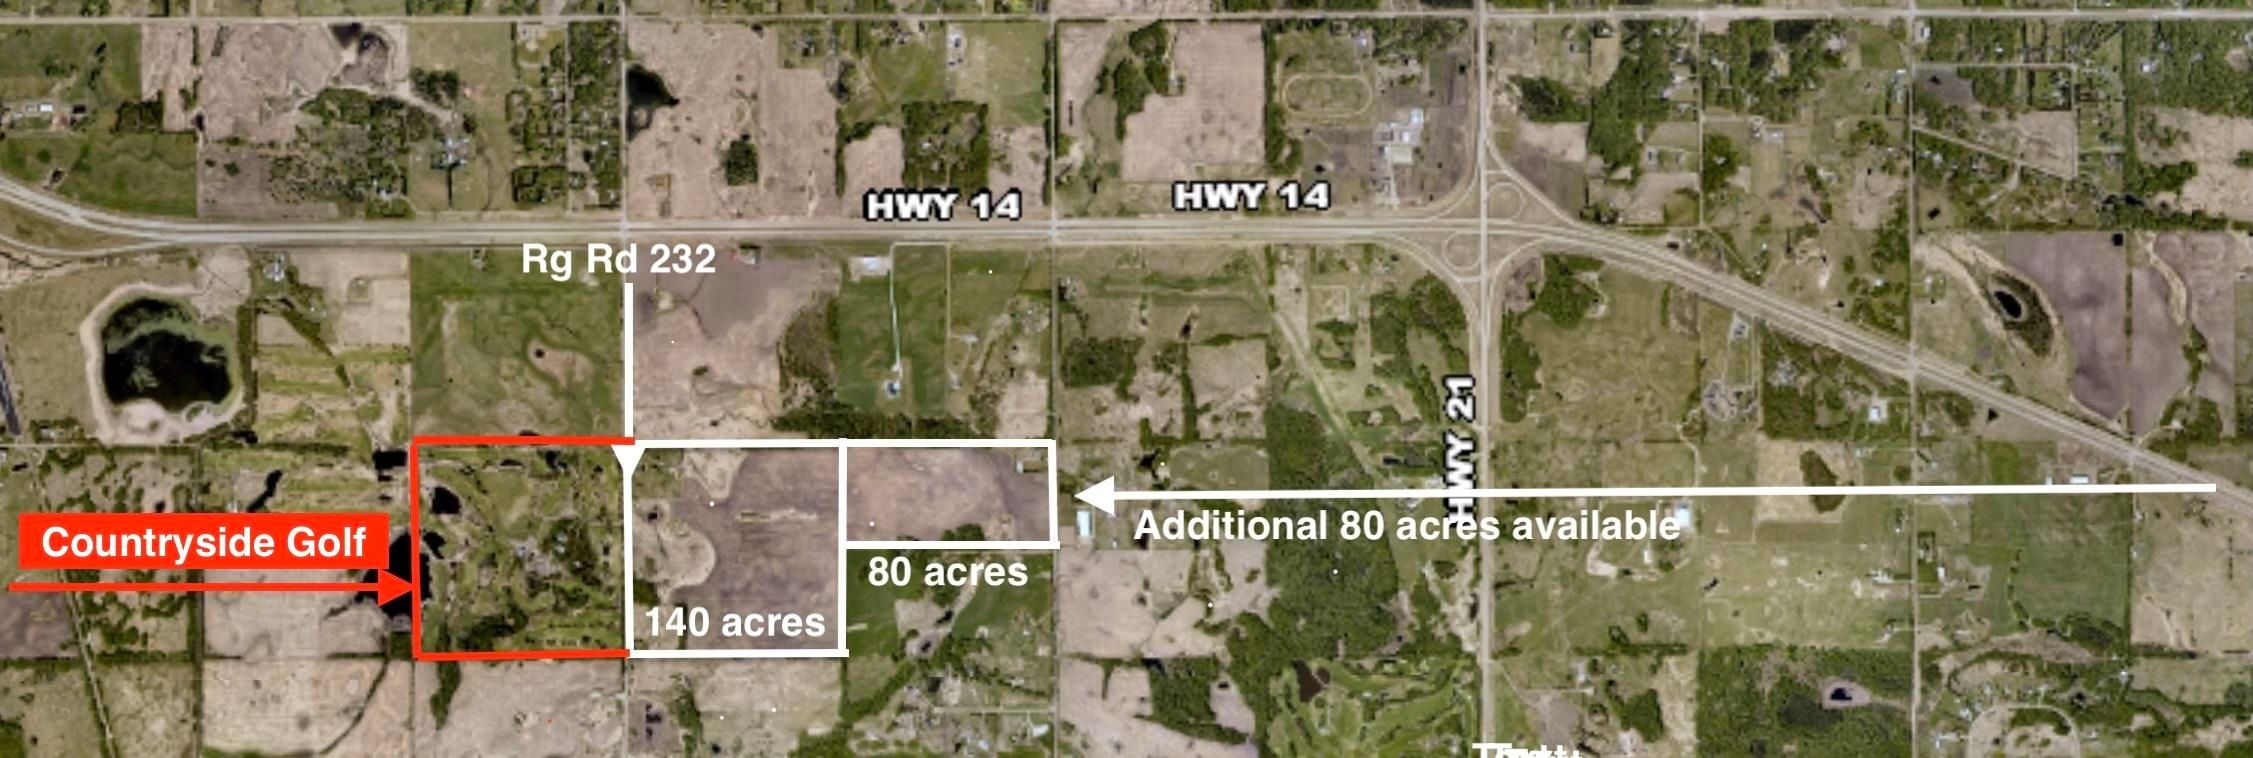 Main Photo: 51478 RGE RD 231: Rural Strathcona County Rural Land/Vacant Lot for sale : MLS®# E4262270